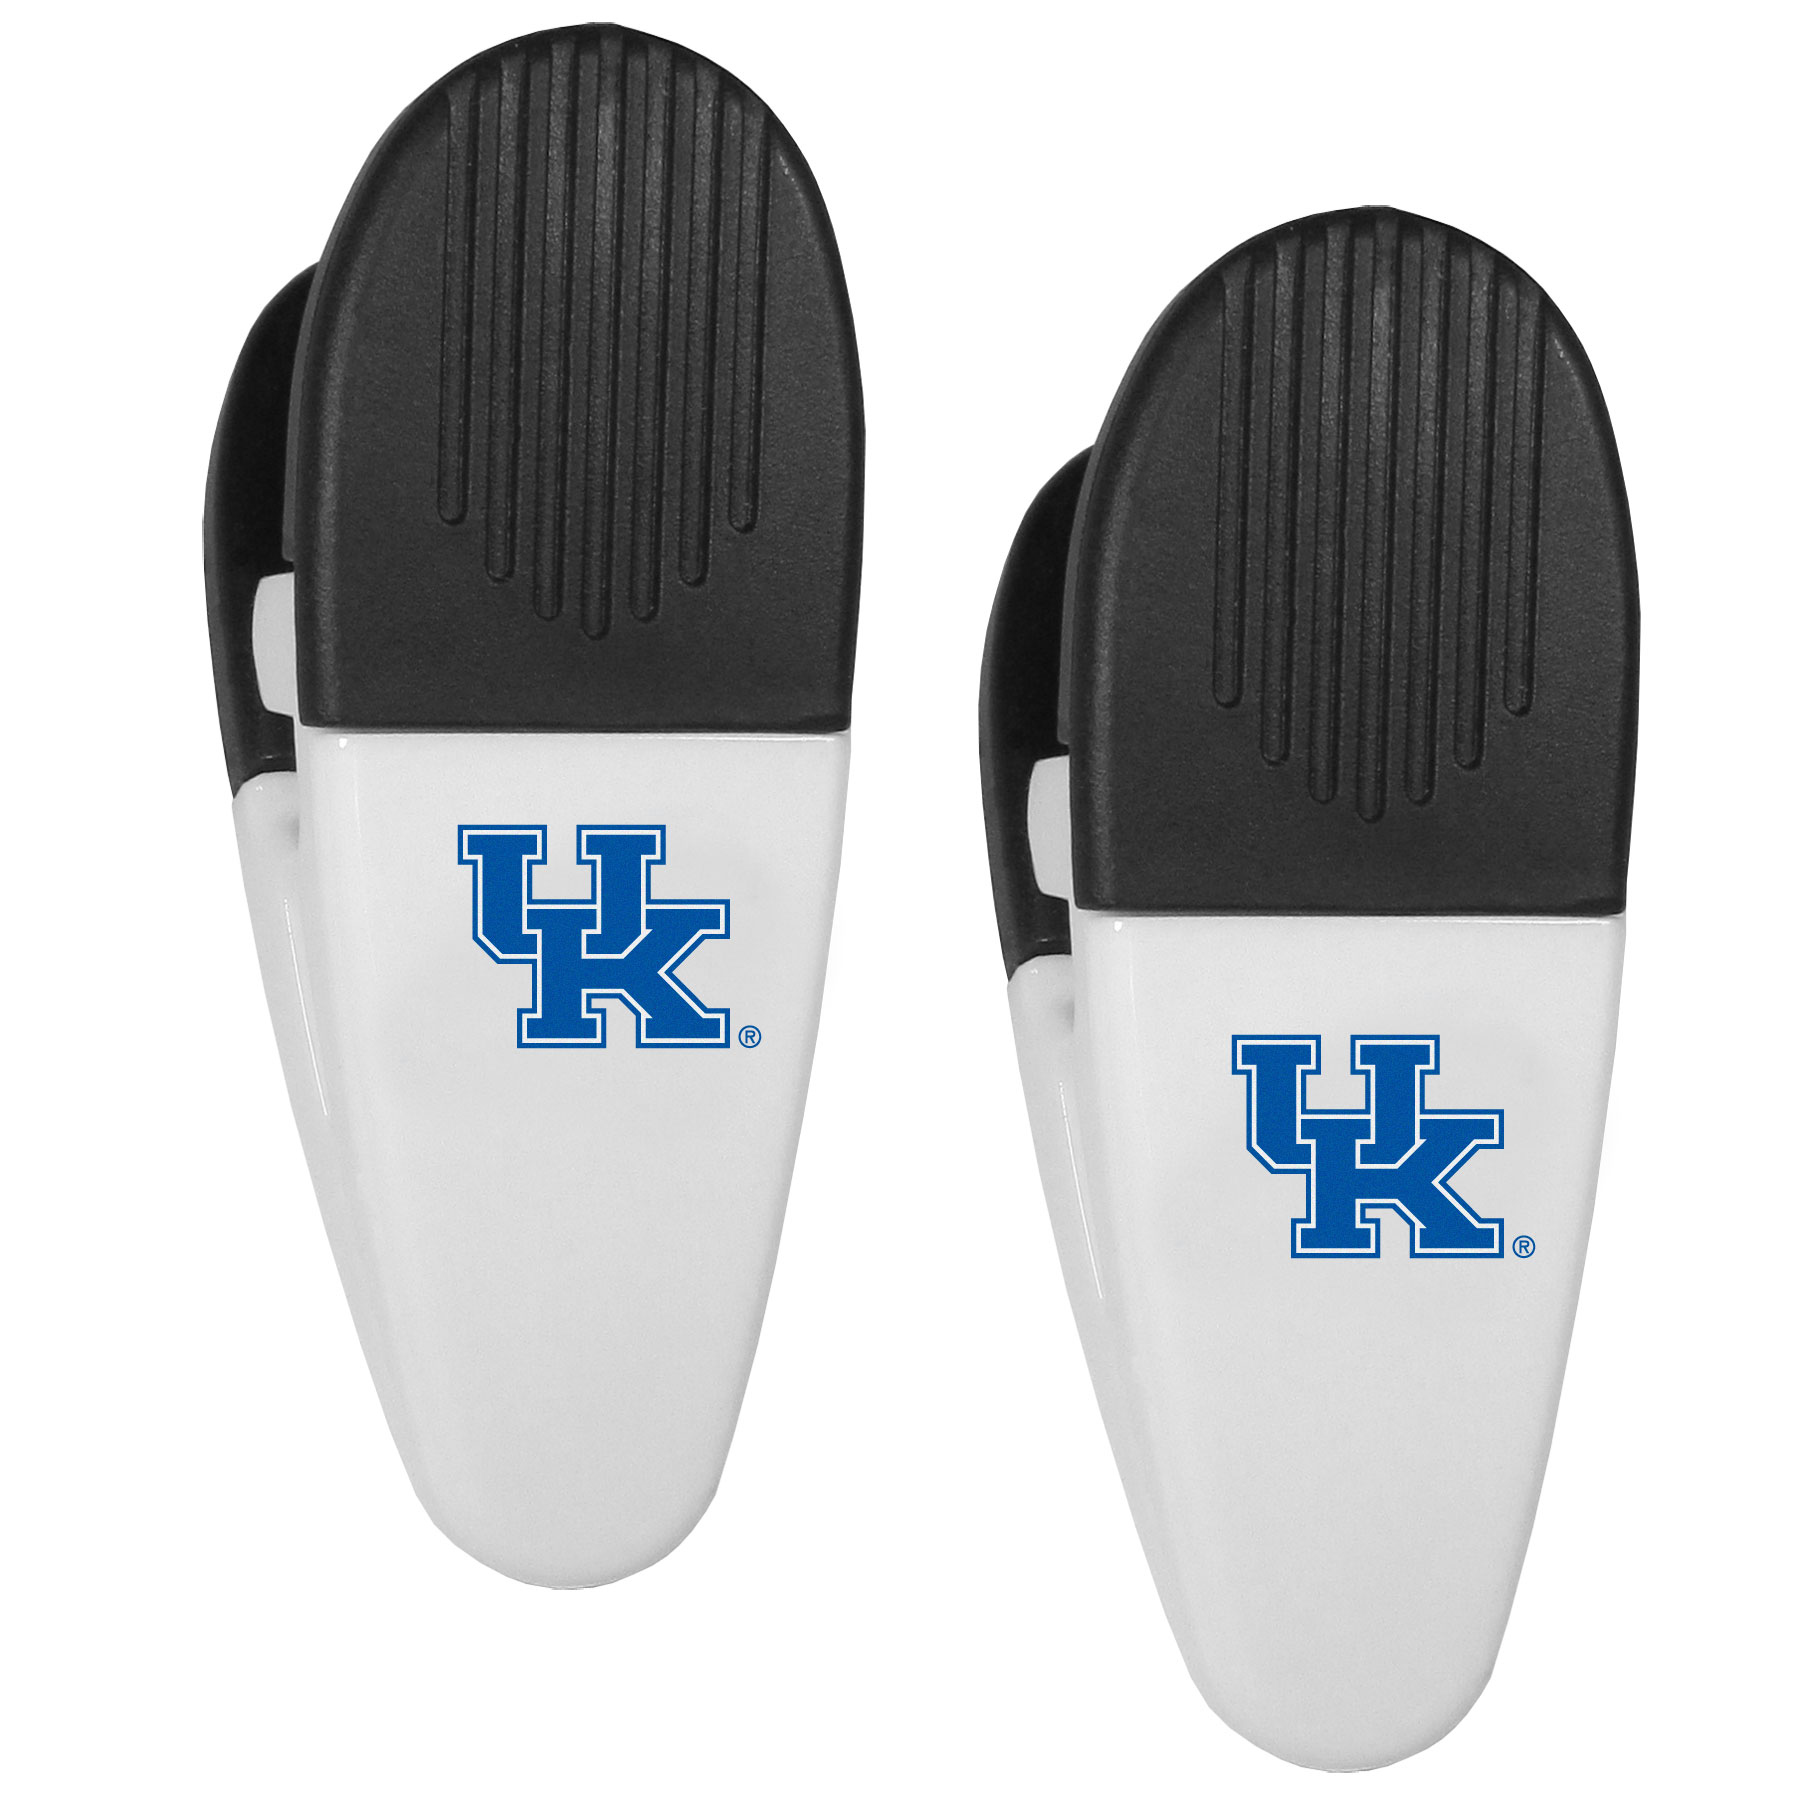 Kentucky Wildcats Mini Chip Clip Magnets, 2 pk - Our Kentucky Wildcats chip clip magnets feature a crisp team logo on the front of the clip. The clip is perfect for sealing chips for freshness and with the powerful magnet on the back it can be used to attach notes to the fridge or hanging your child's artwork. Set of 2 magnet clips, each clip is 3.5 inches tall and 1.25 inch wide.